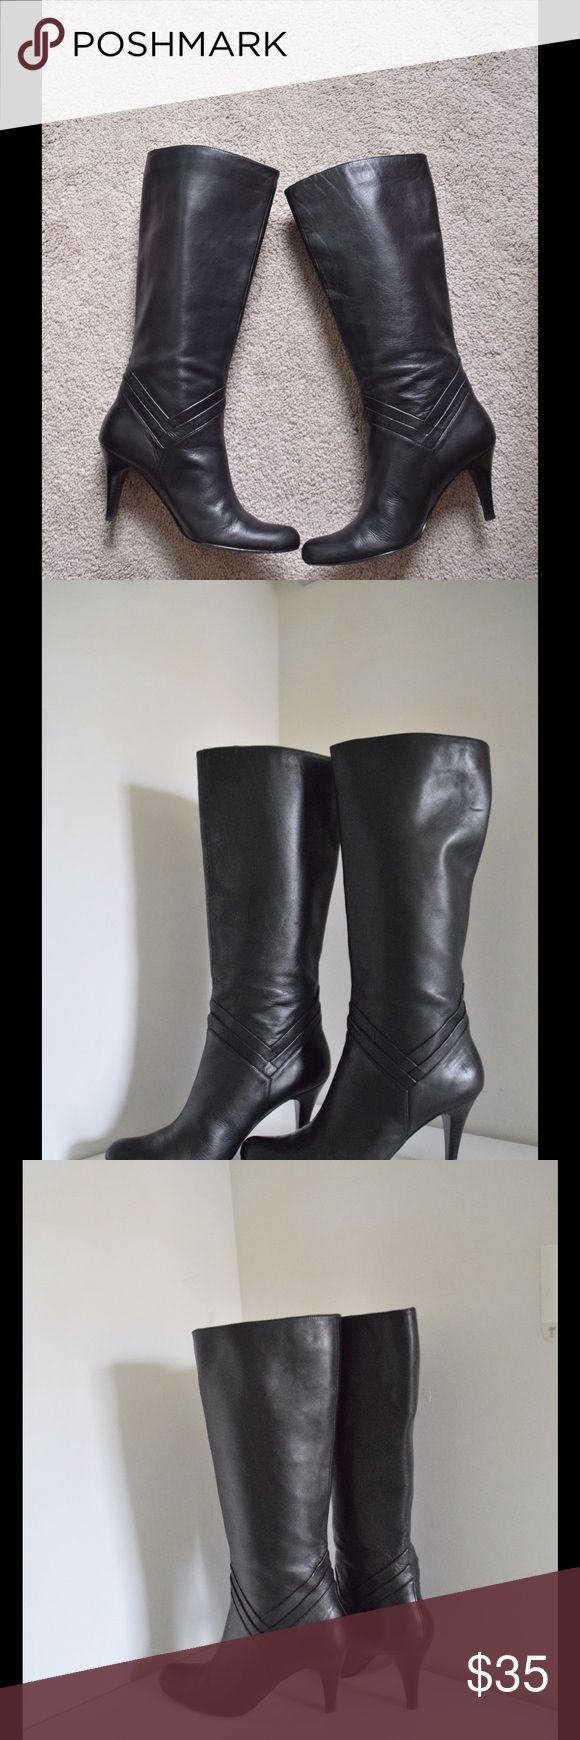 """Star Ling Nordstrom boots Nordstrom Star Ling 'Nigiri' leather boots Beautiful soft black leather tall boots Size 8 1/2. Heels 3"""" Scalloped details  Minor wear to soles (pic). In excellent condition! Star Ling Shoes Winter & Rain Boots"""